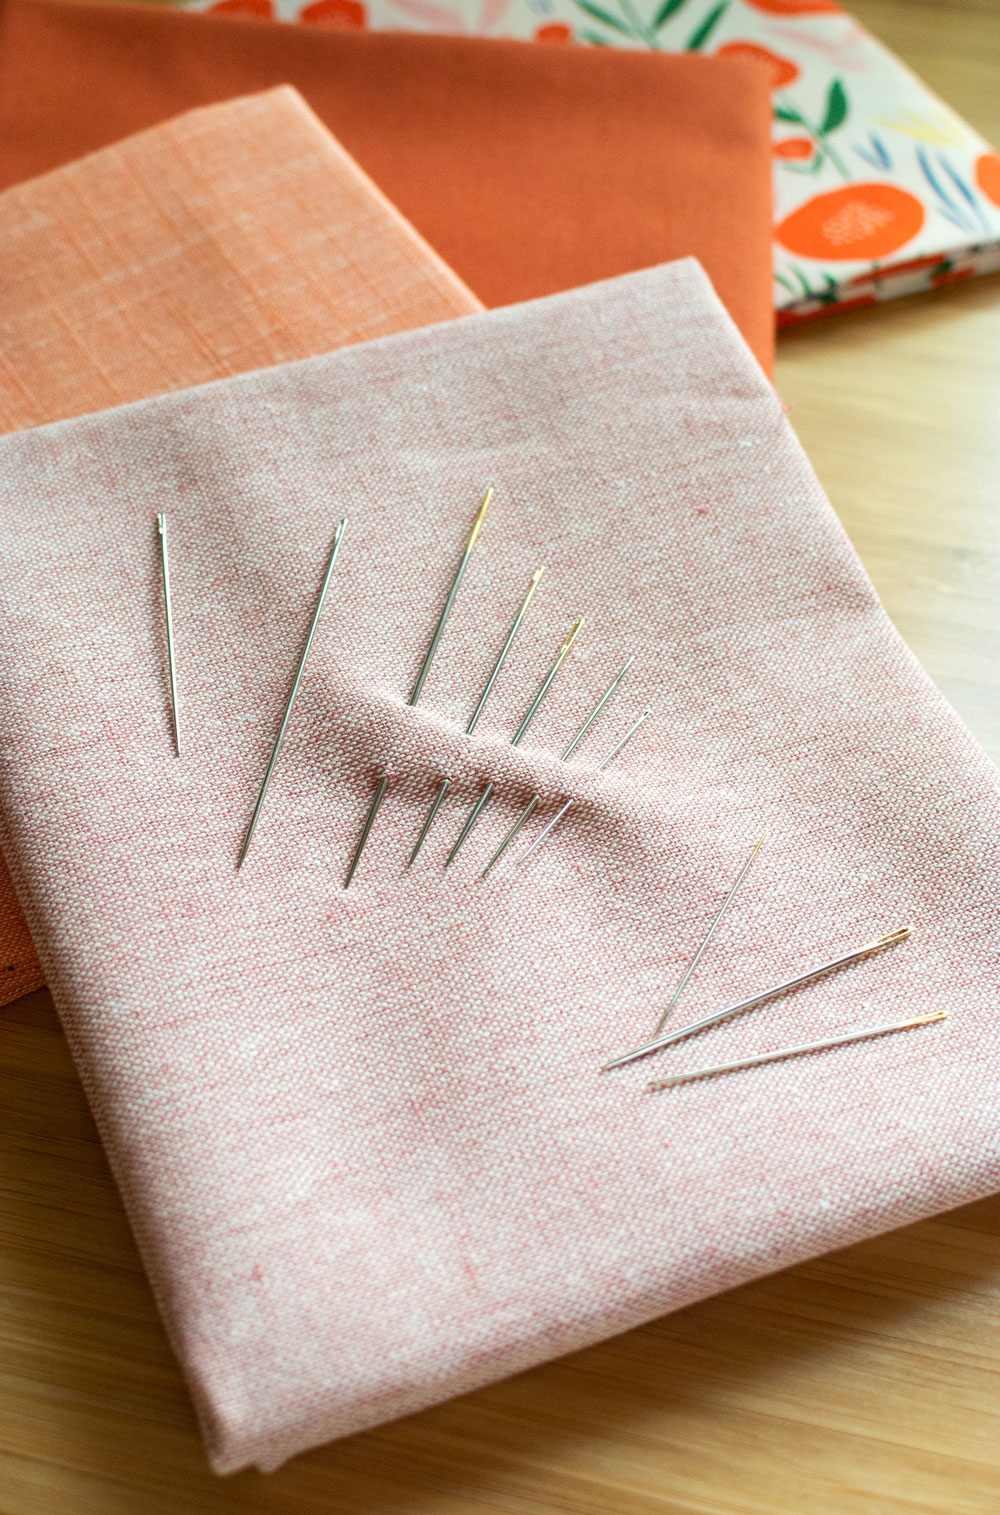 Everything you need to know about hand quilting needles. | Suzy Quilts